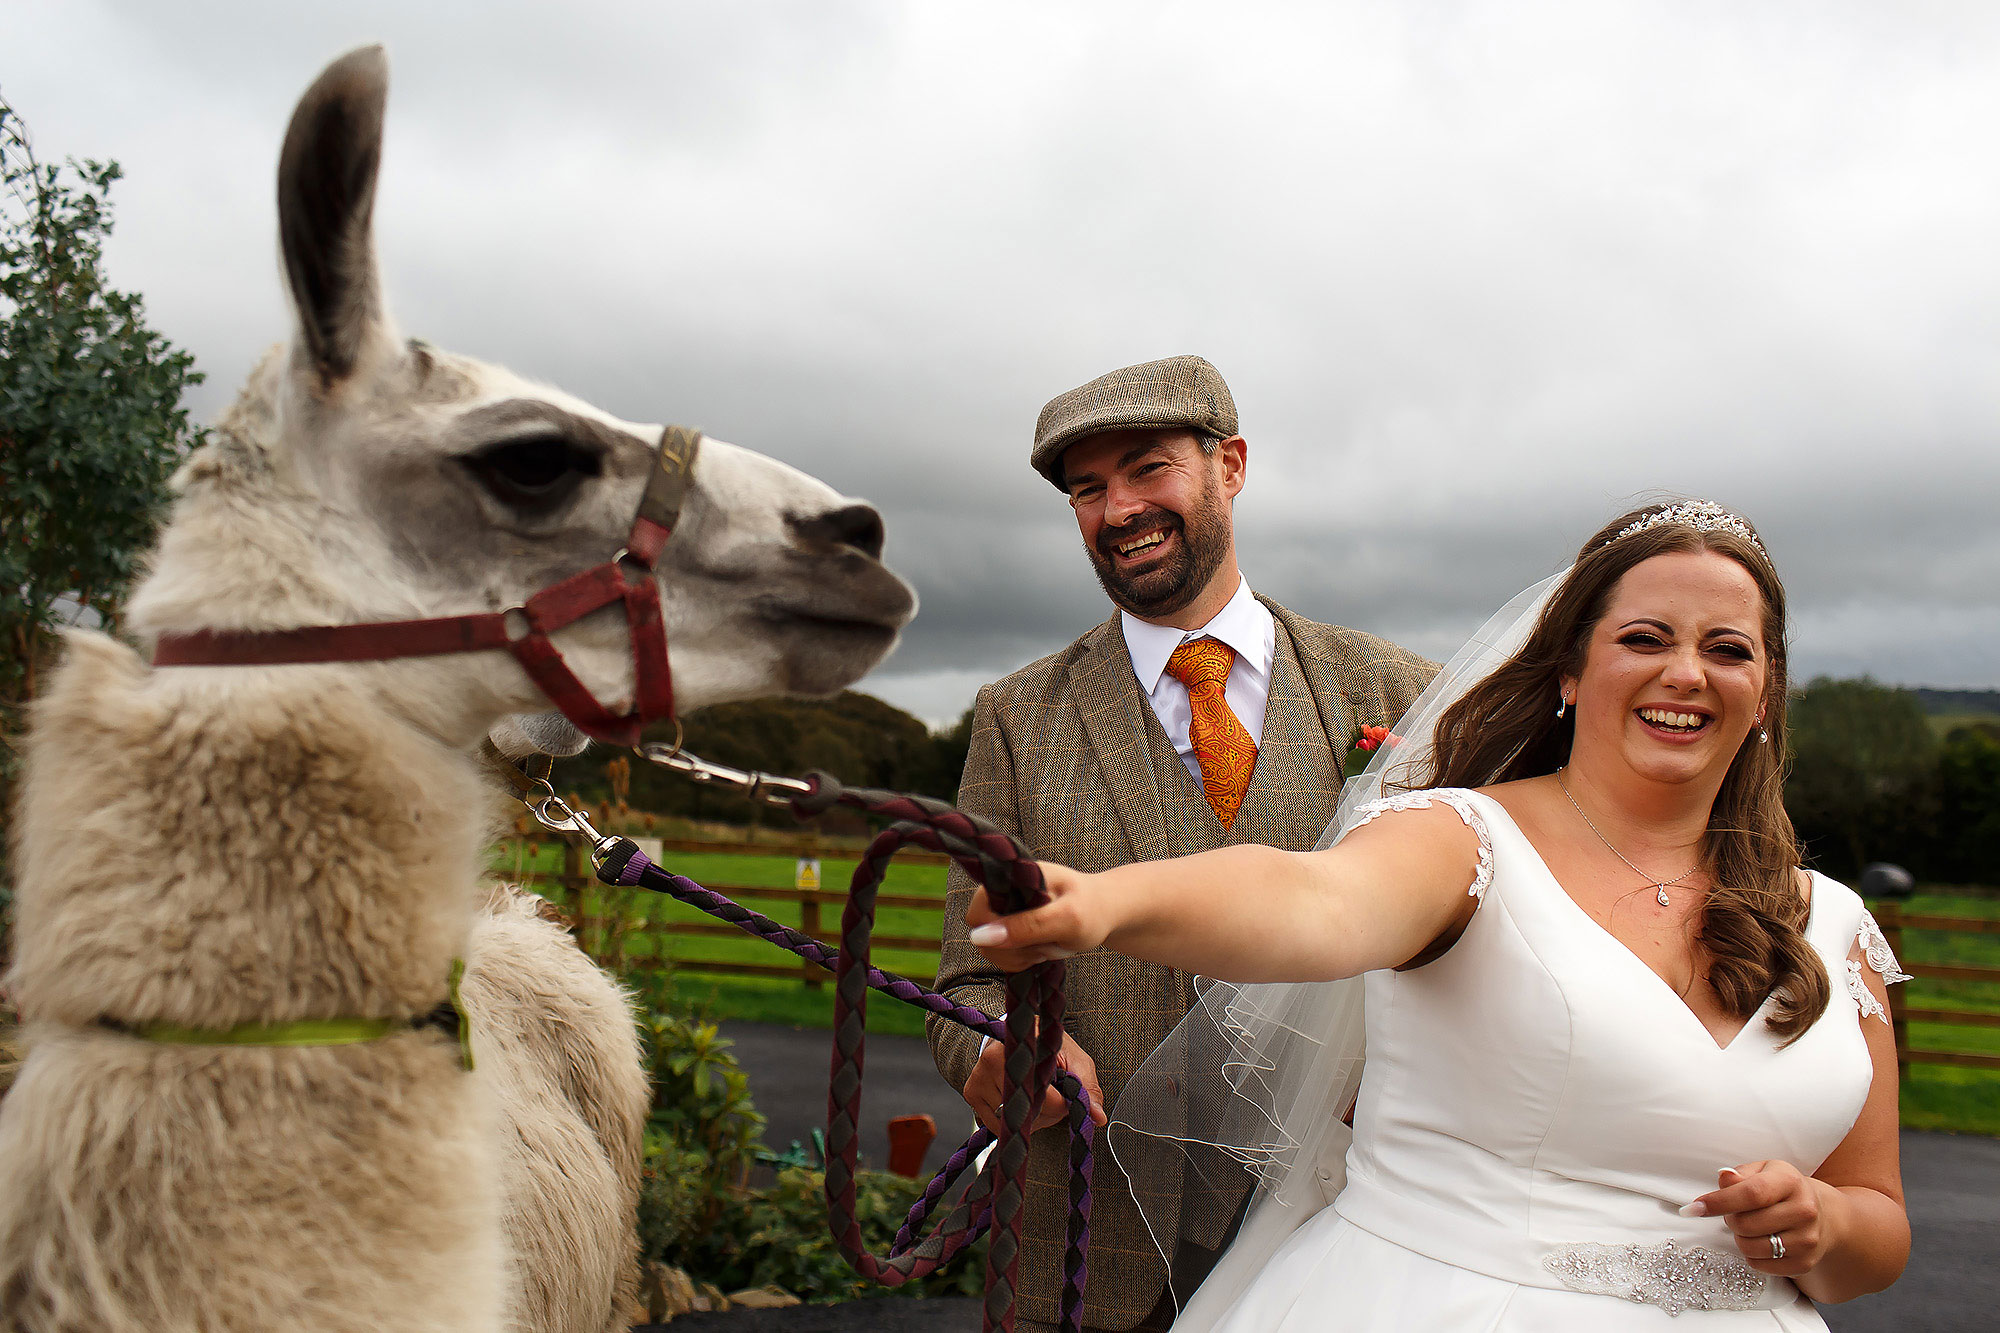 Bride and Groom wearing flat cap laughing as they hold the Alpaca at Wellbeing Farm | Wellbeing Farm wedding photographs by Toni Darcy Photography